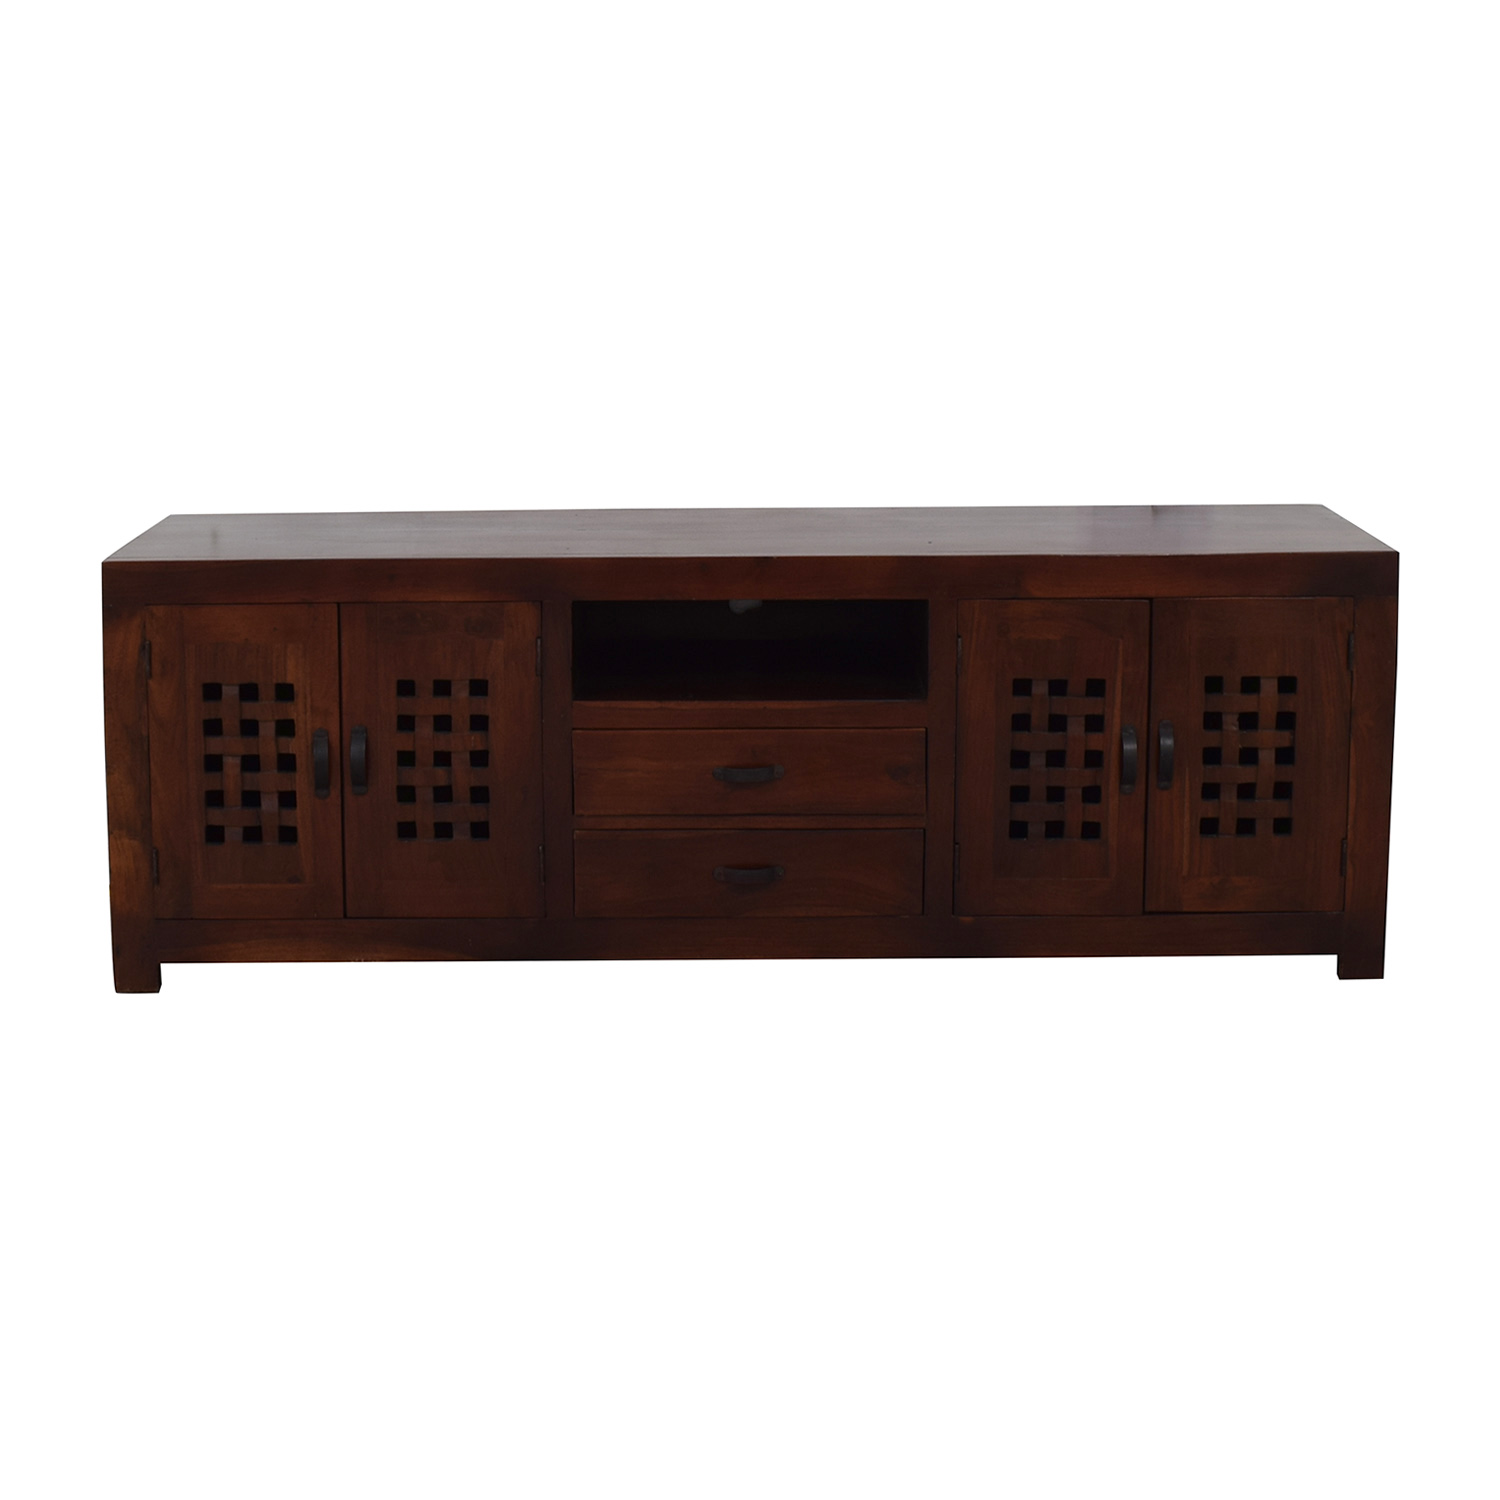 Australian Jarrah Wood Console second hand